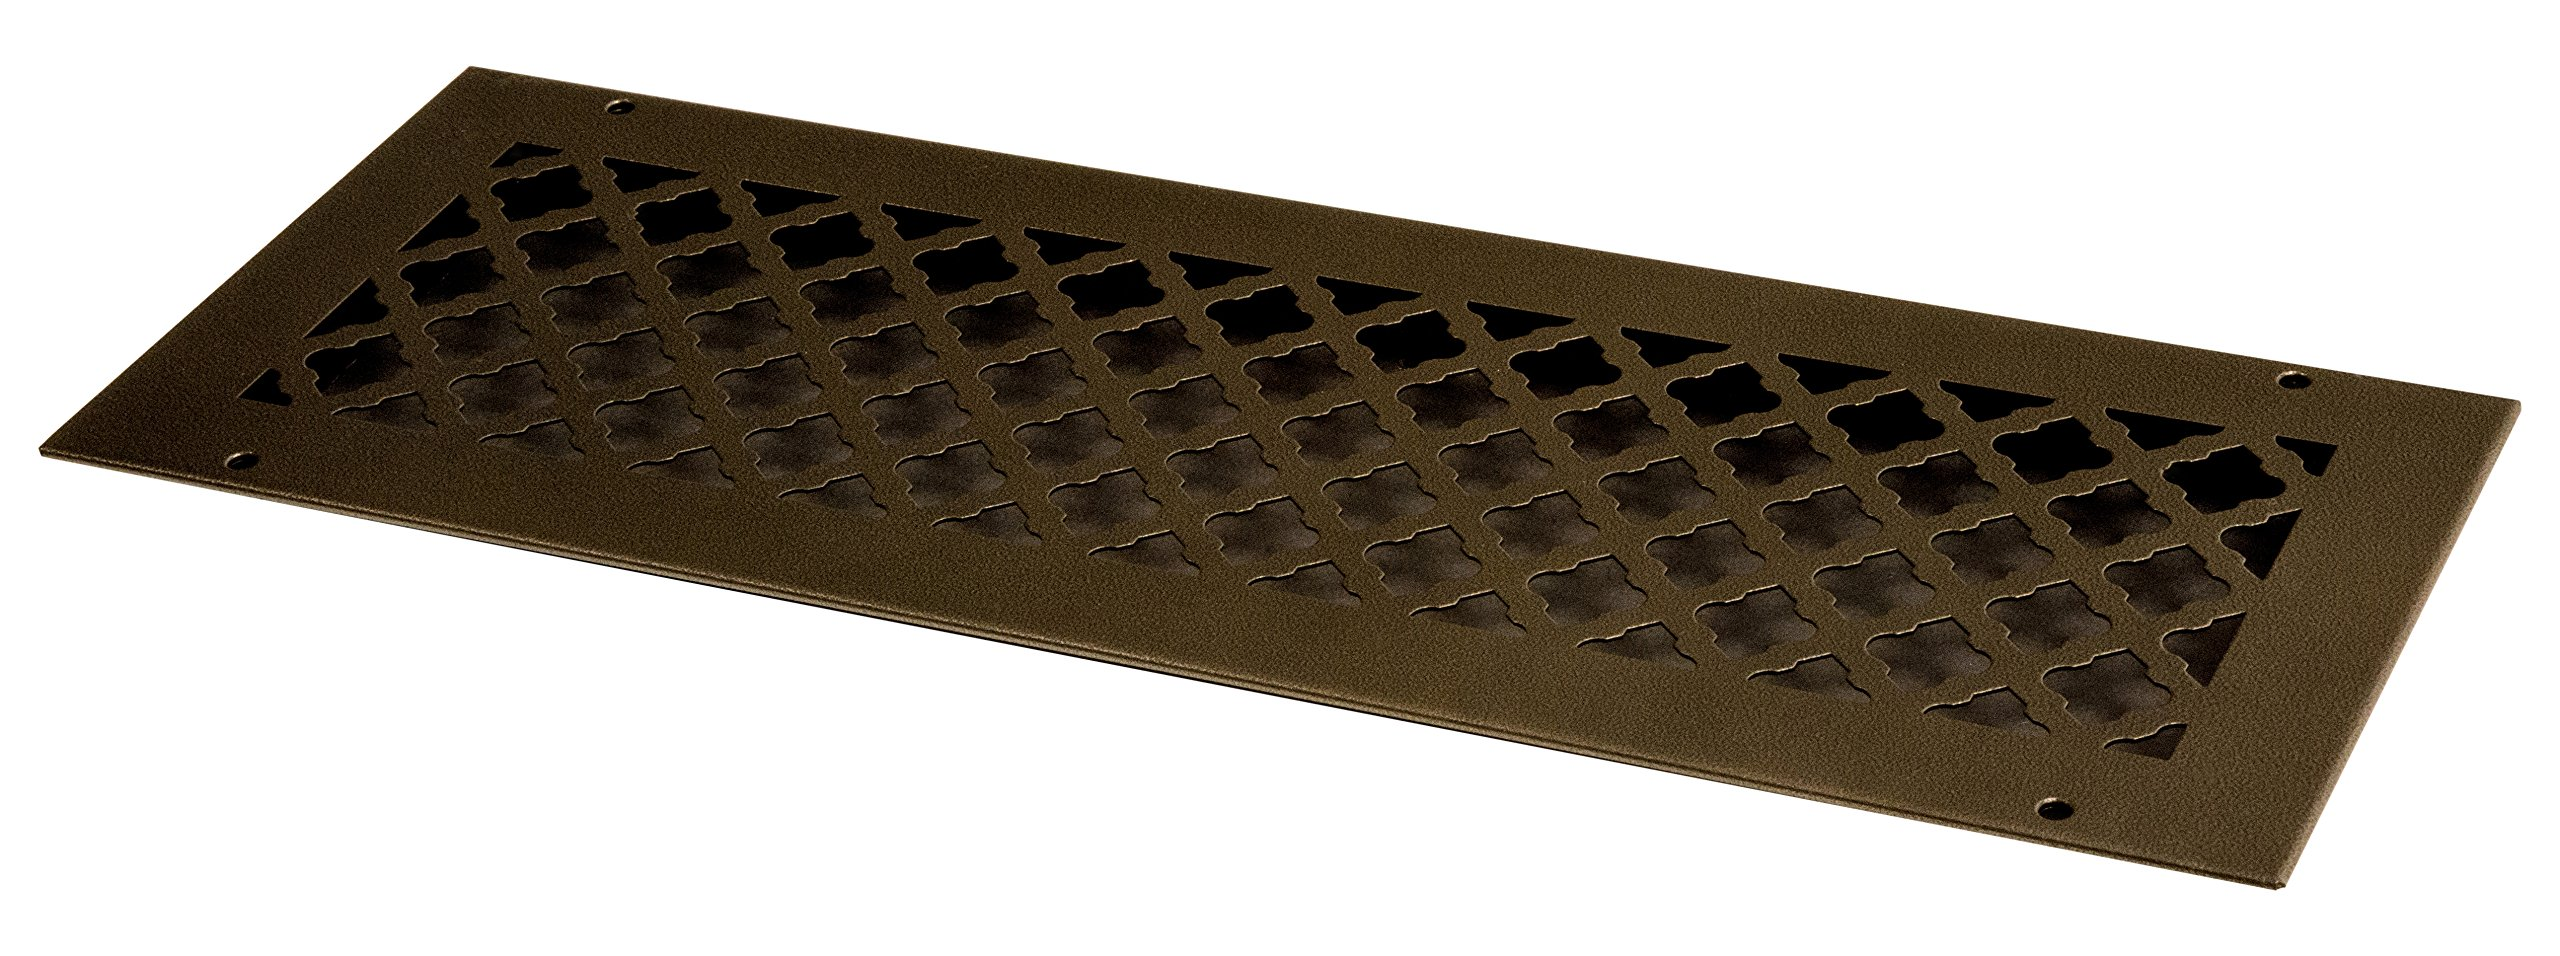 SteelCrest BTU20X6RORBH Bronze Series Designer Wall/Ceiling Vent Cover, with mounting Screws Oil Rubbed